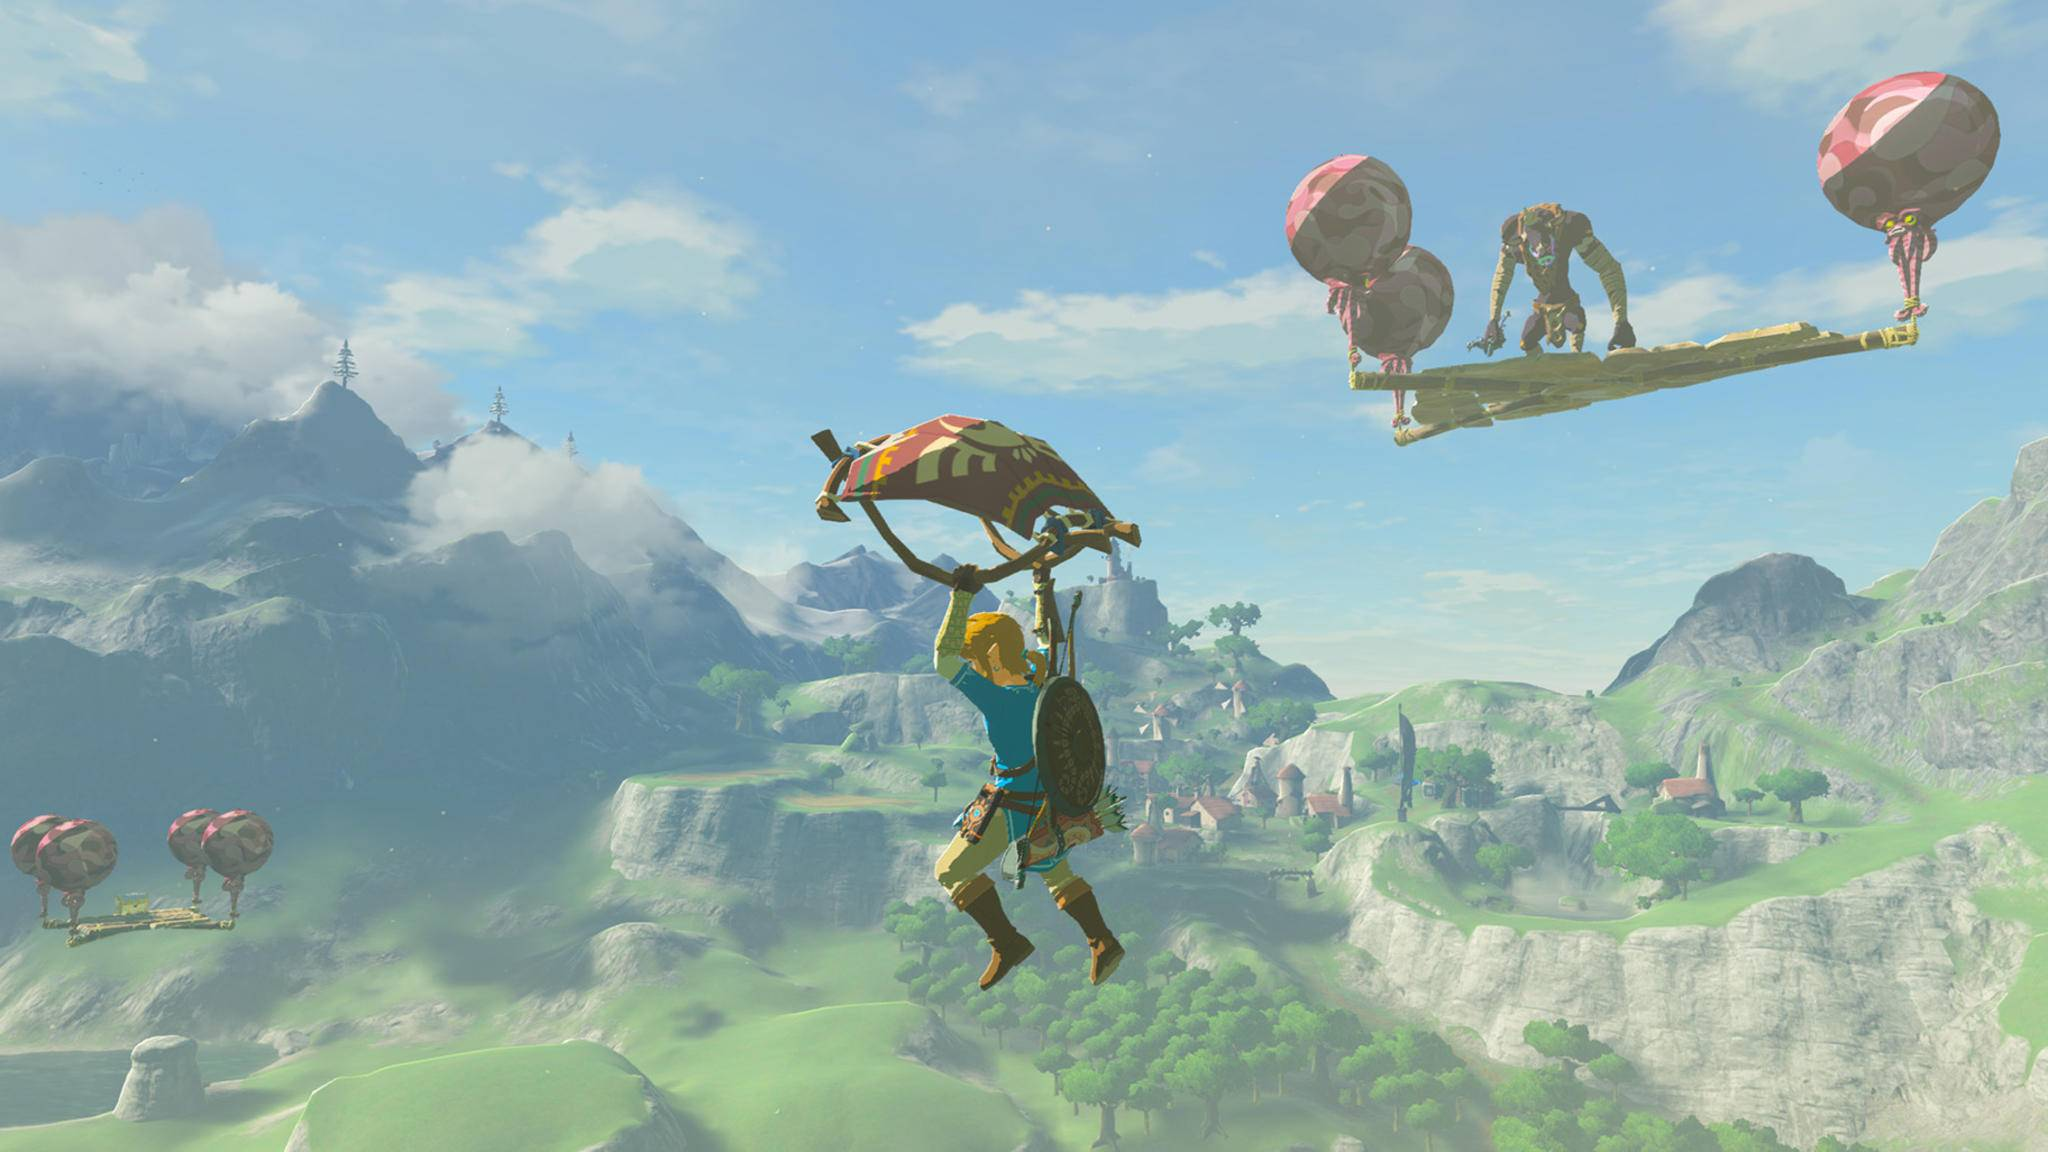 """The Legend of Zelda: Breath of the Wild"": Im neuen Schwierigen Modus gibt es am Himmel schwebende Planken."